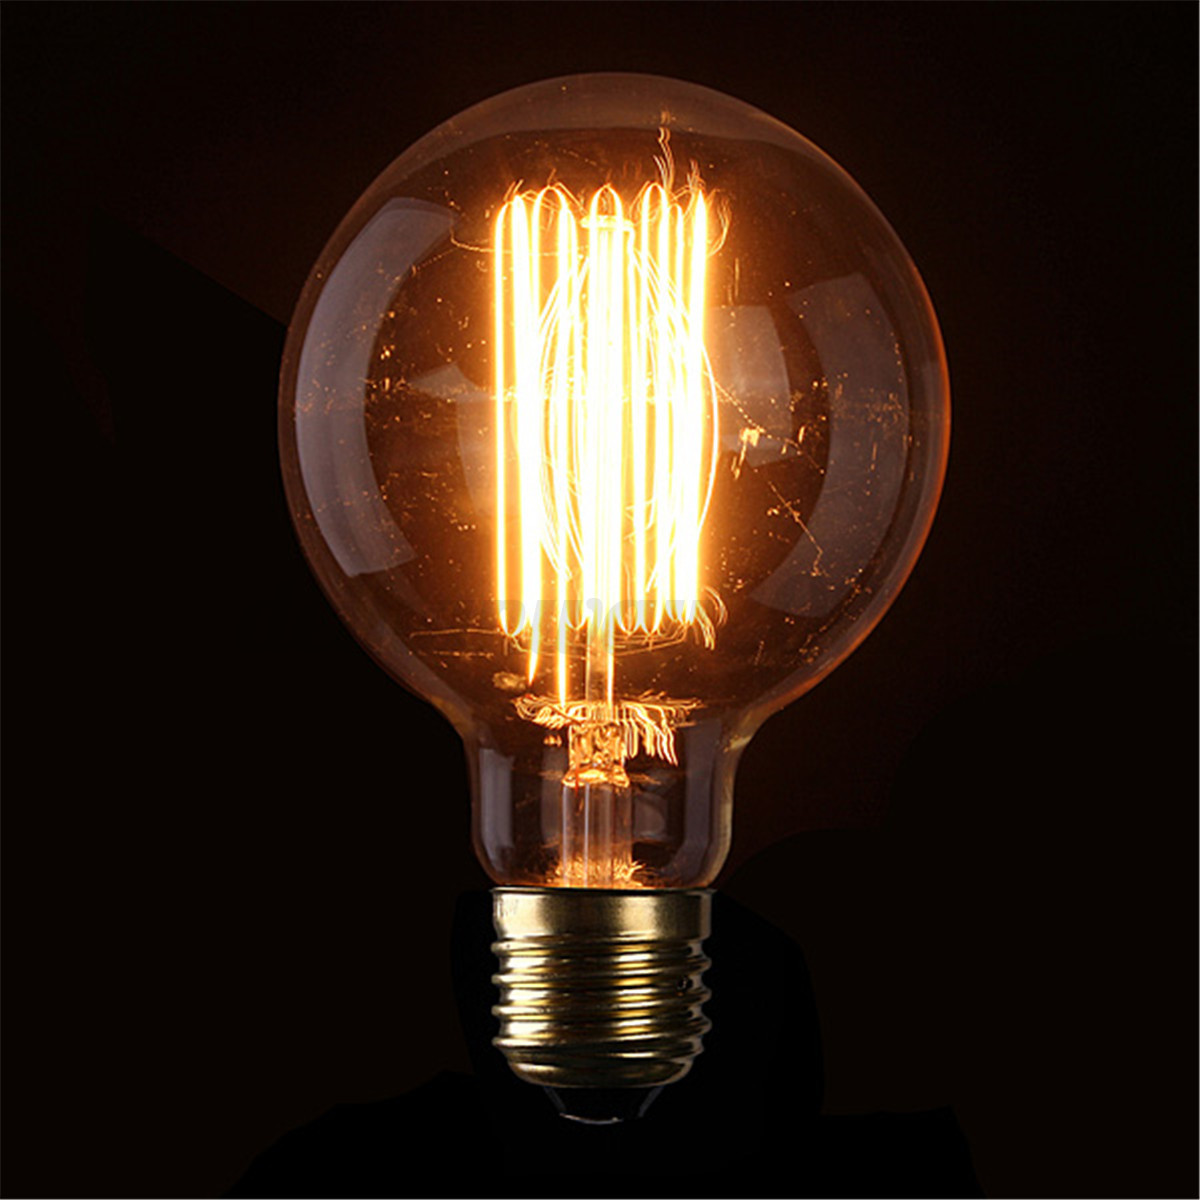 e27 e14 b22 40 60w vintage edison lampe ampoule douille filament carbone bulbs ebay. Black Bedroom Furniture Sets. Home Design Ideas